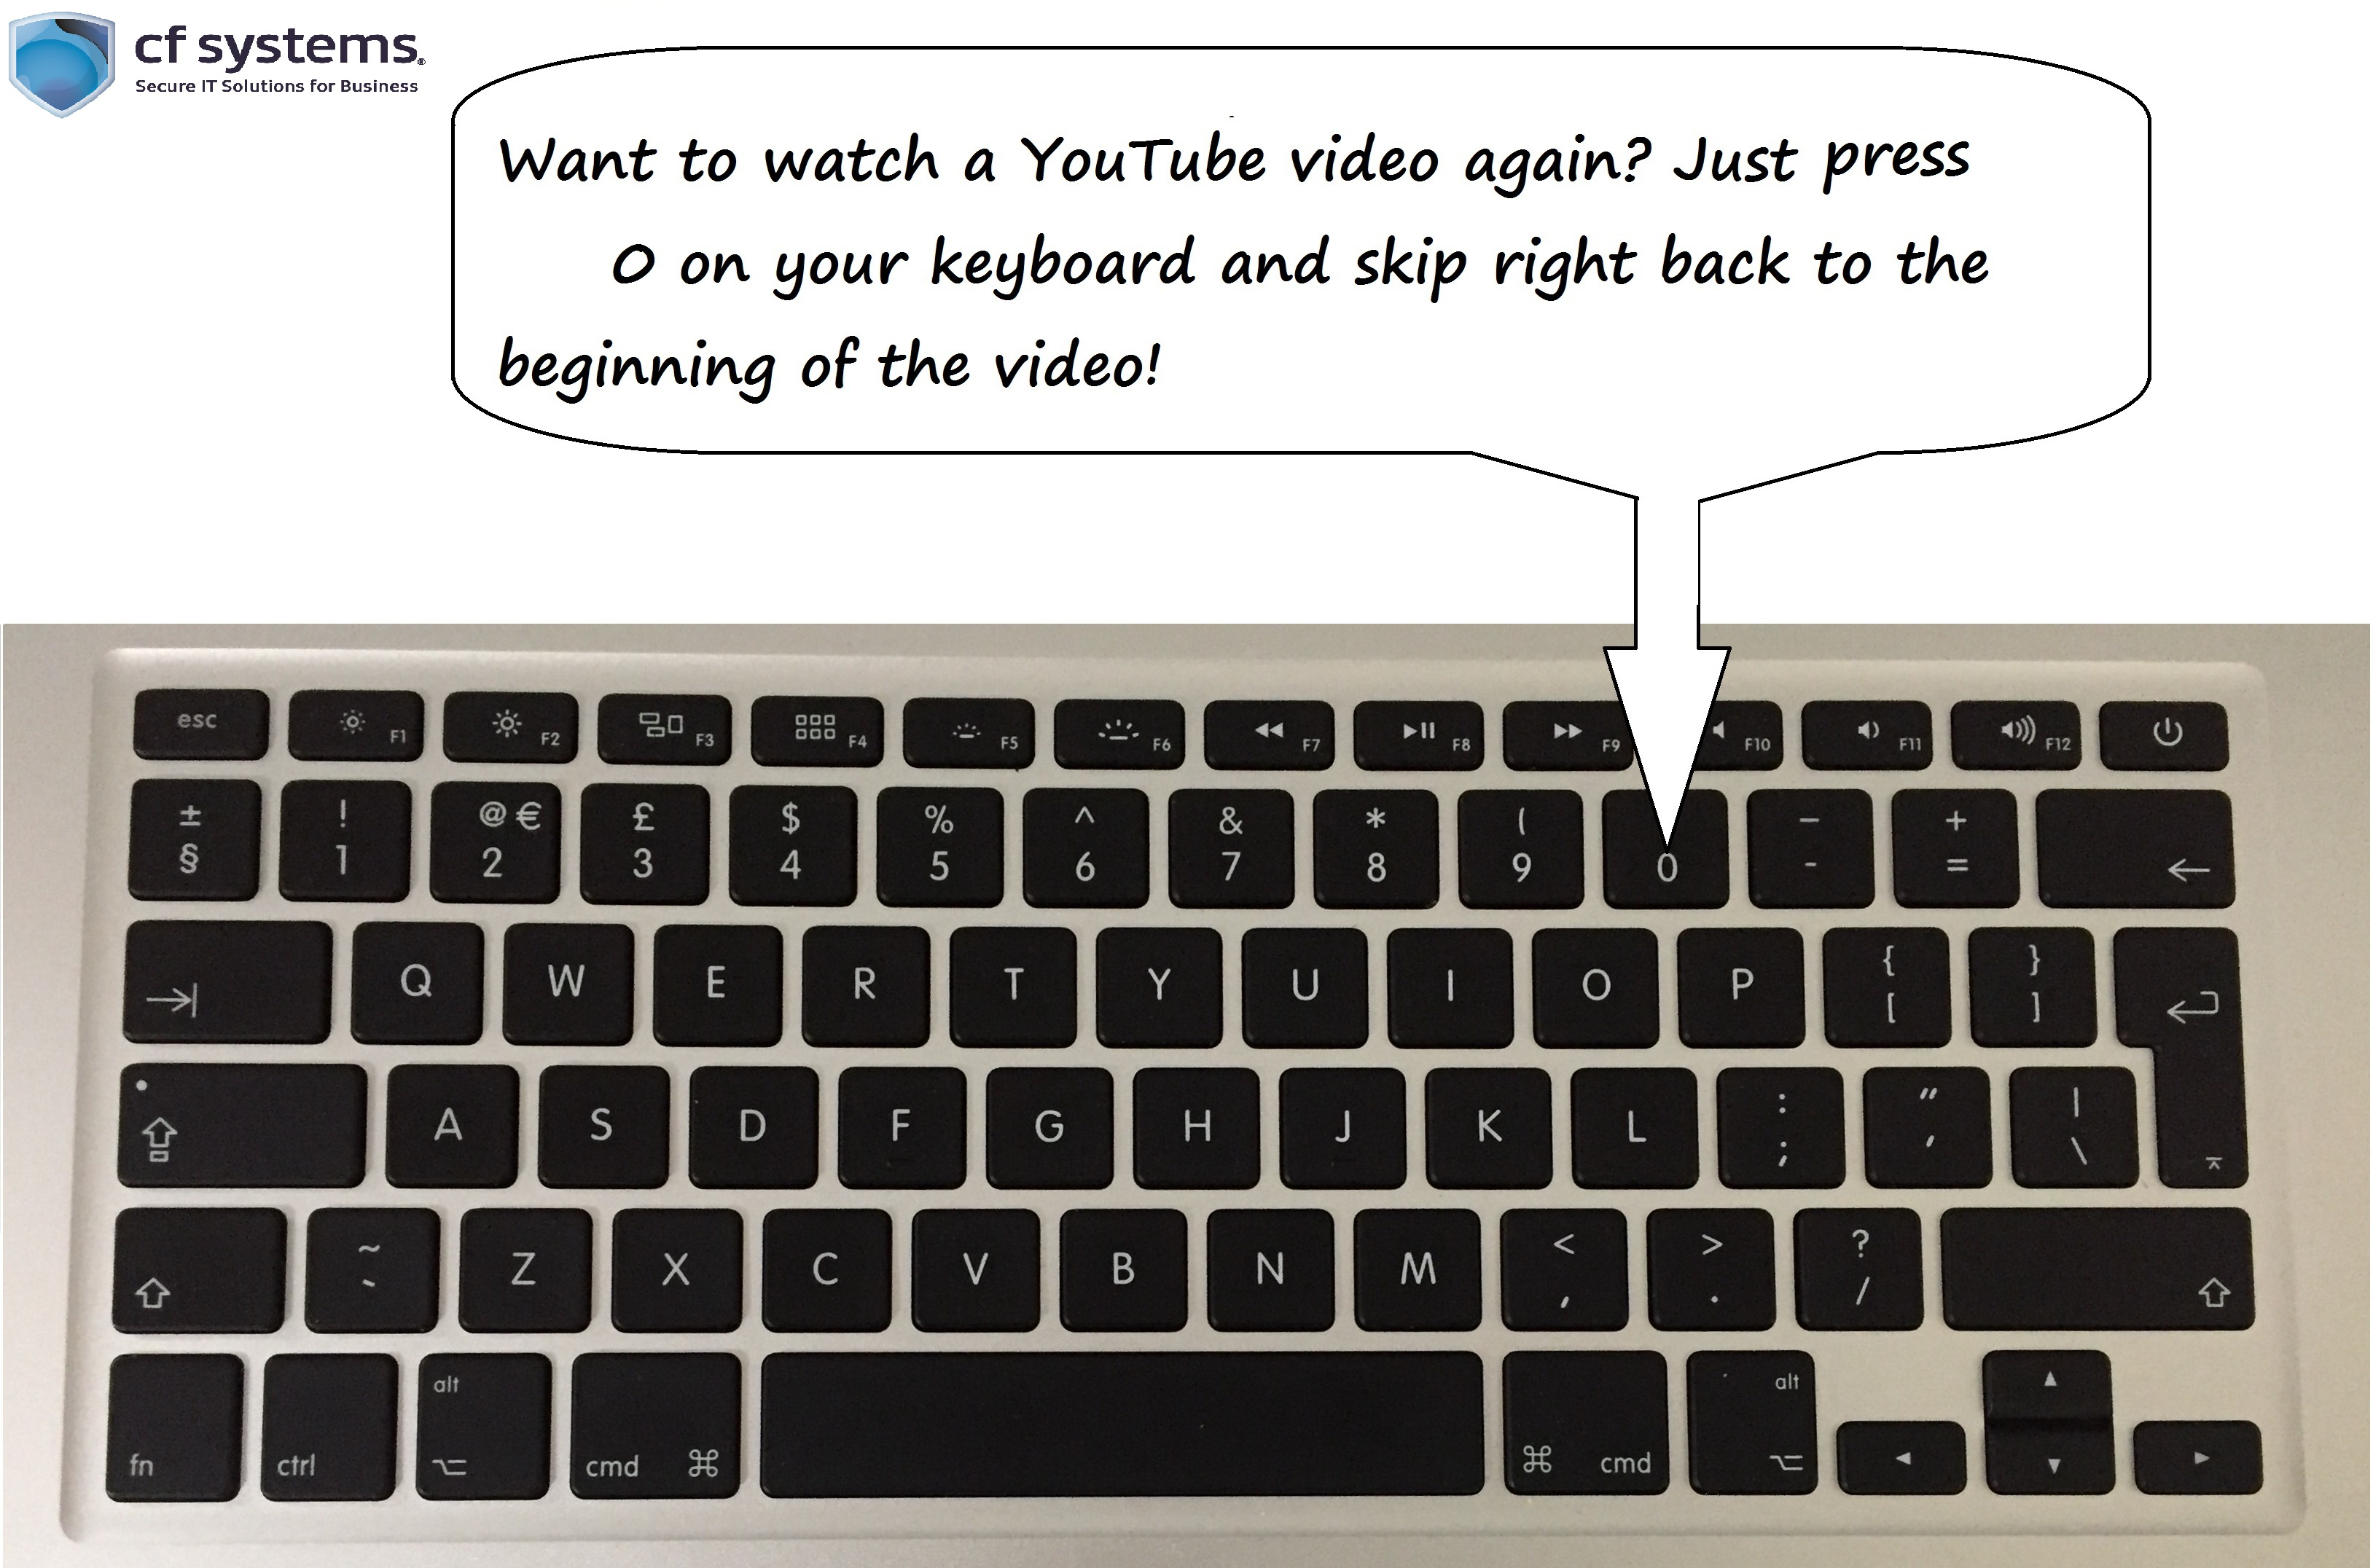 YouTube Tech Tip: skip the beginning of a video